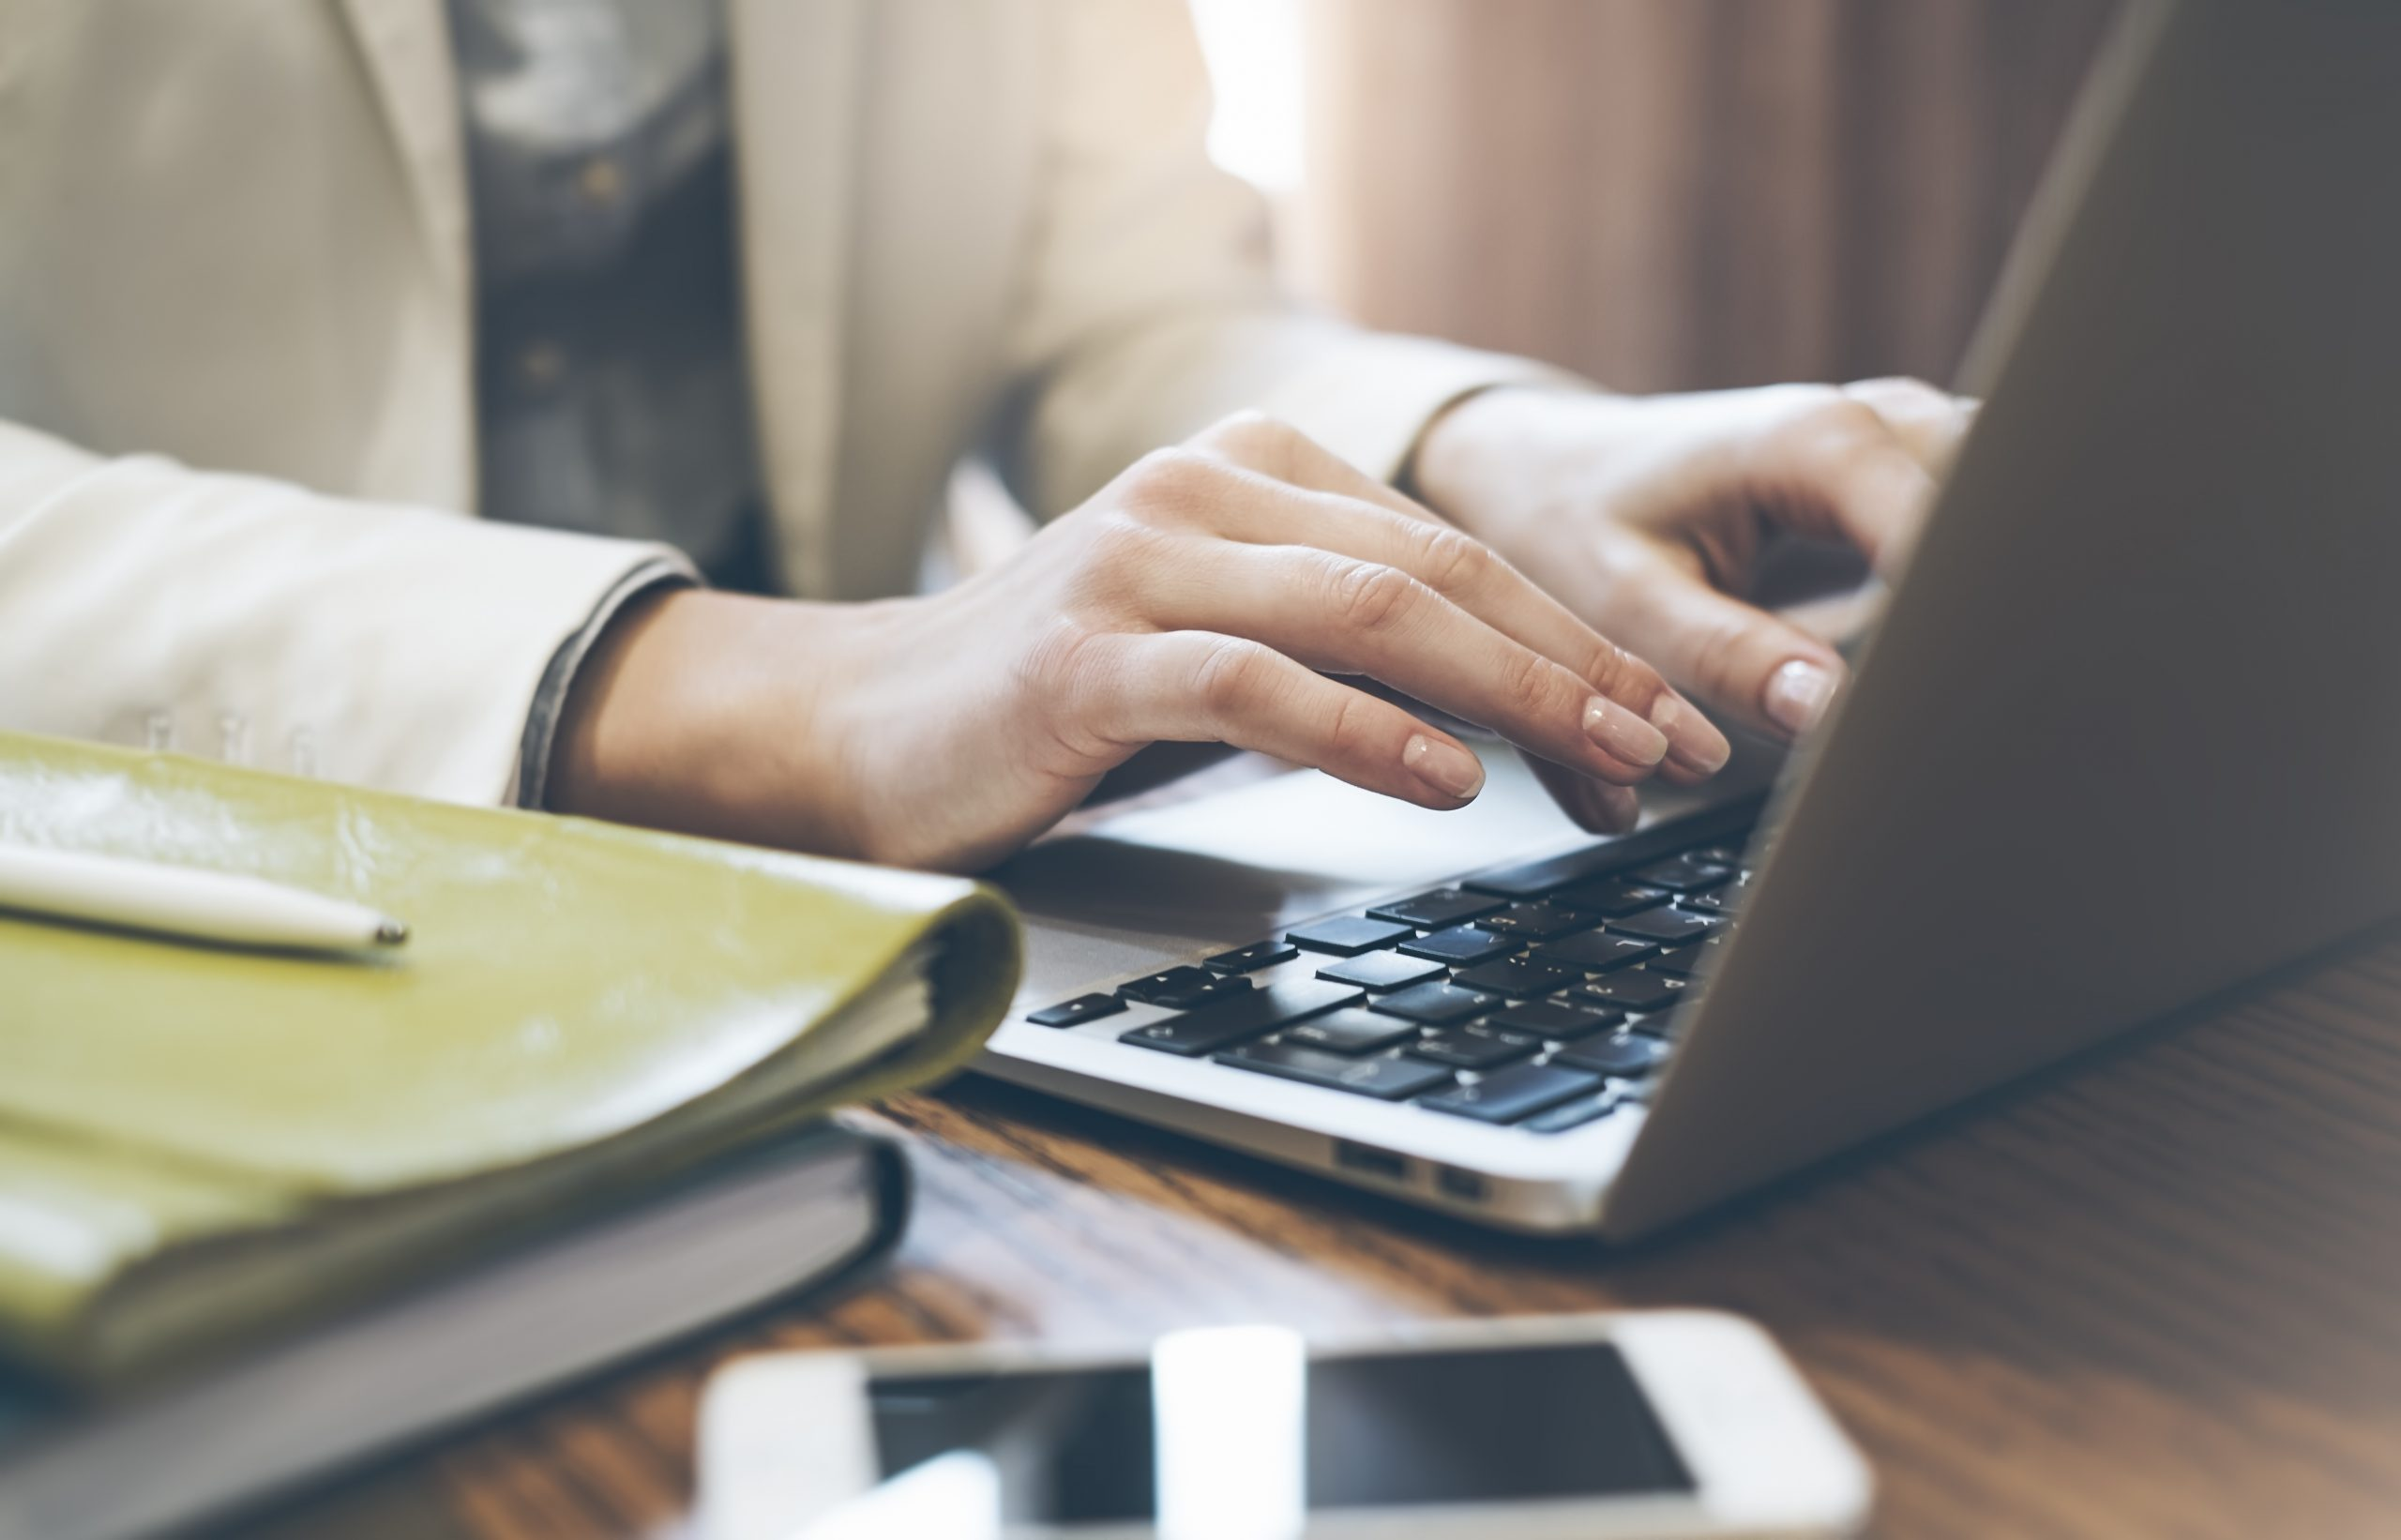 8 Tips for Remote Hiring During COVID-19